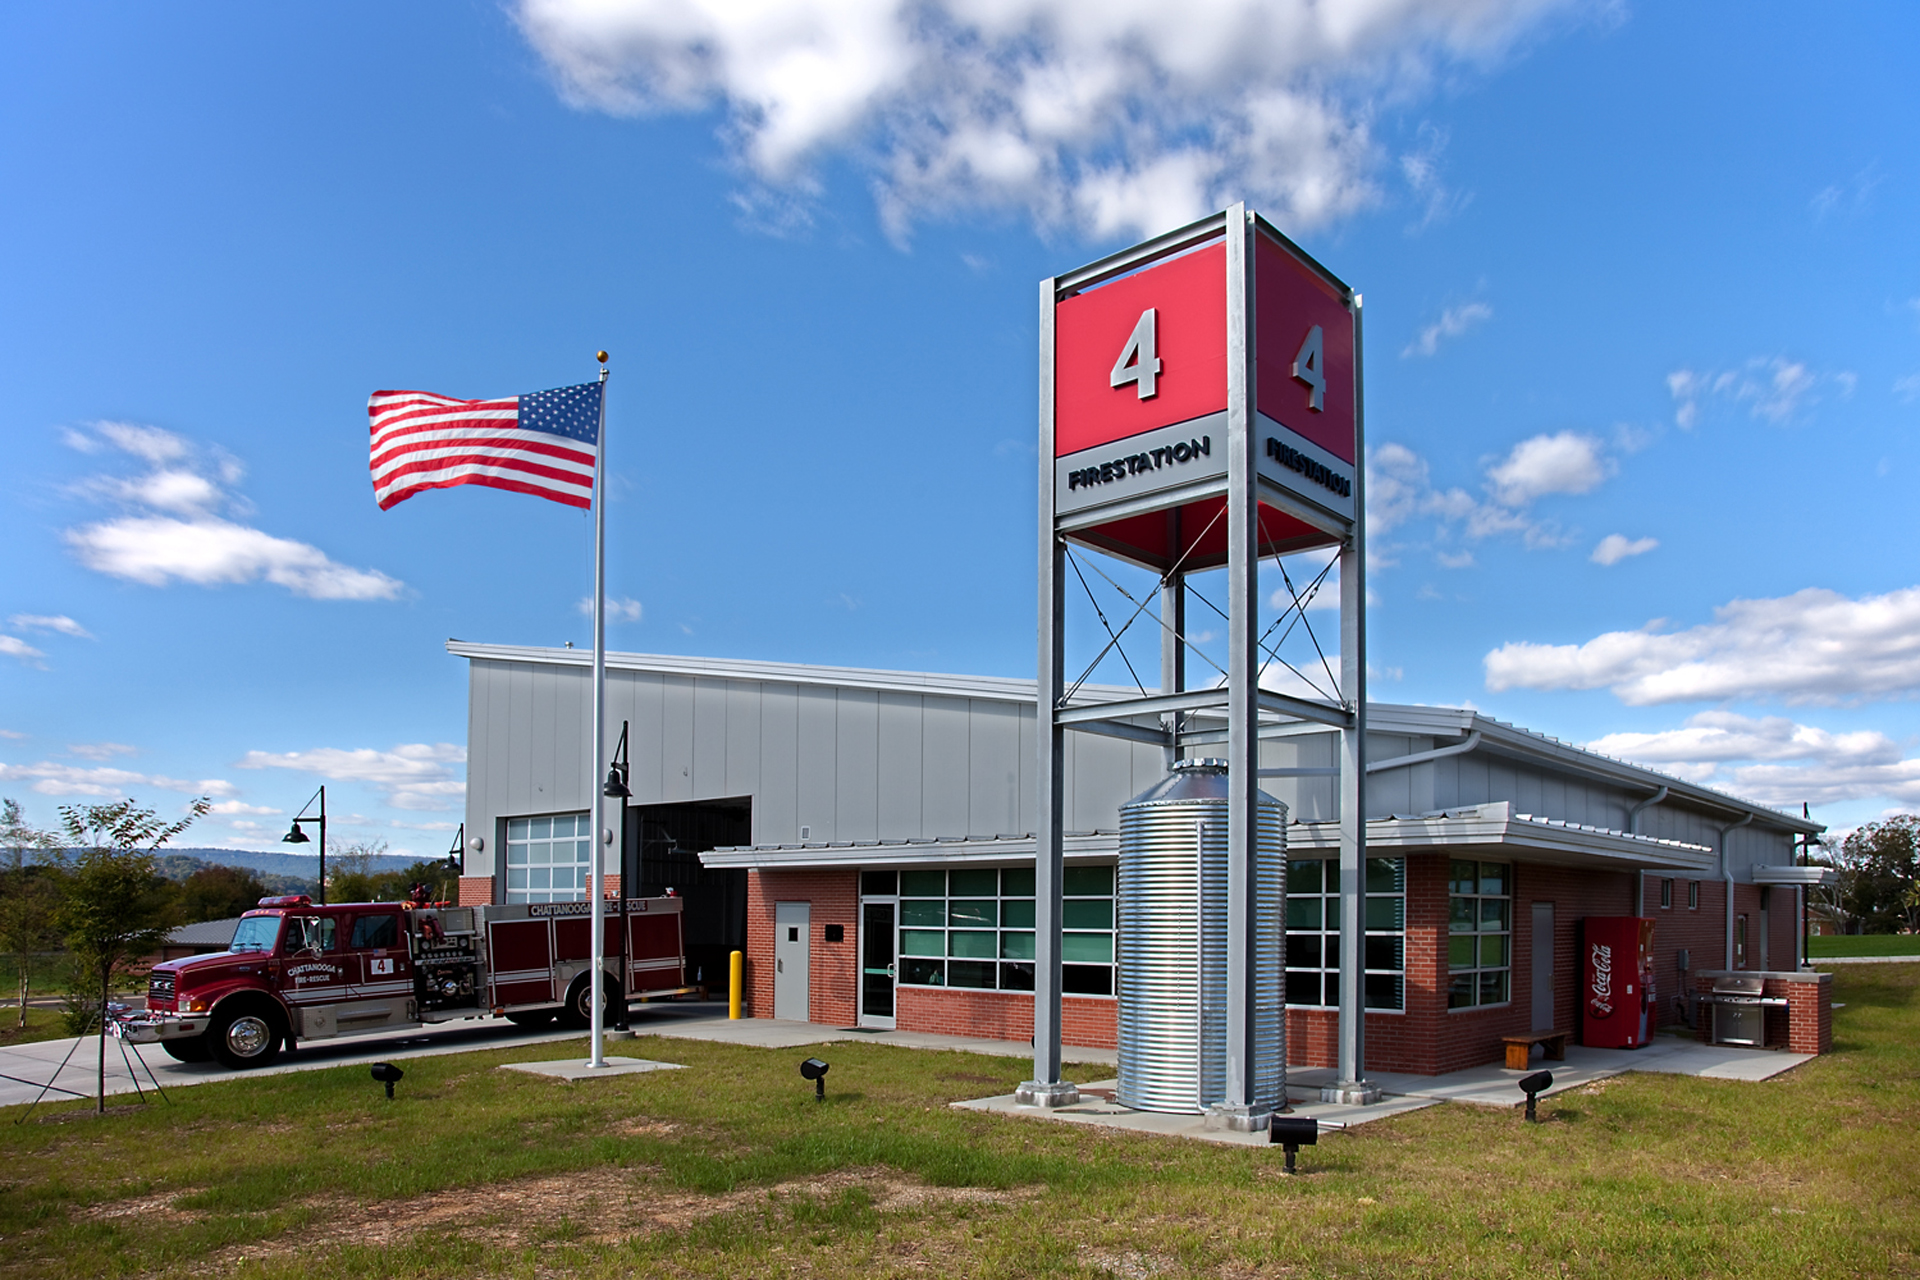 Chattanooga Fire Station #4